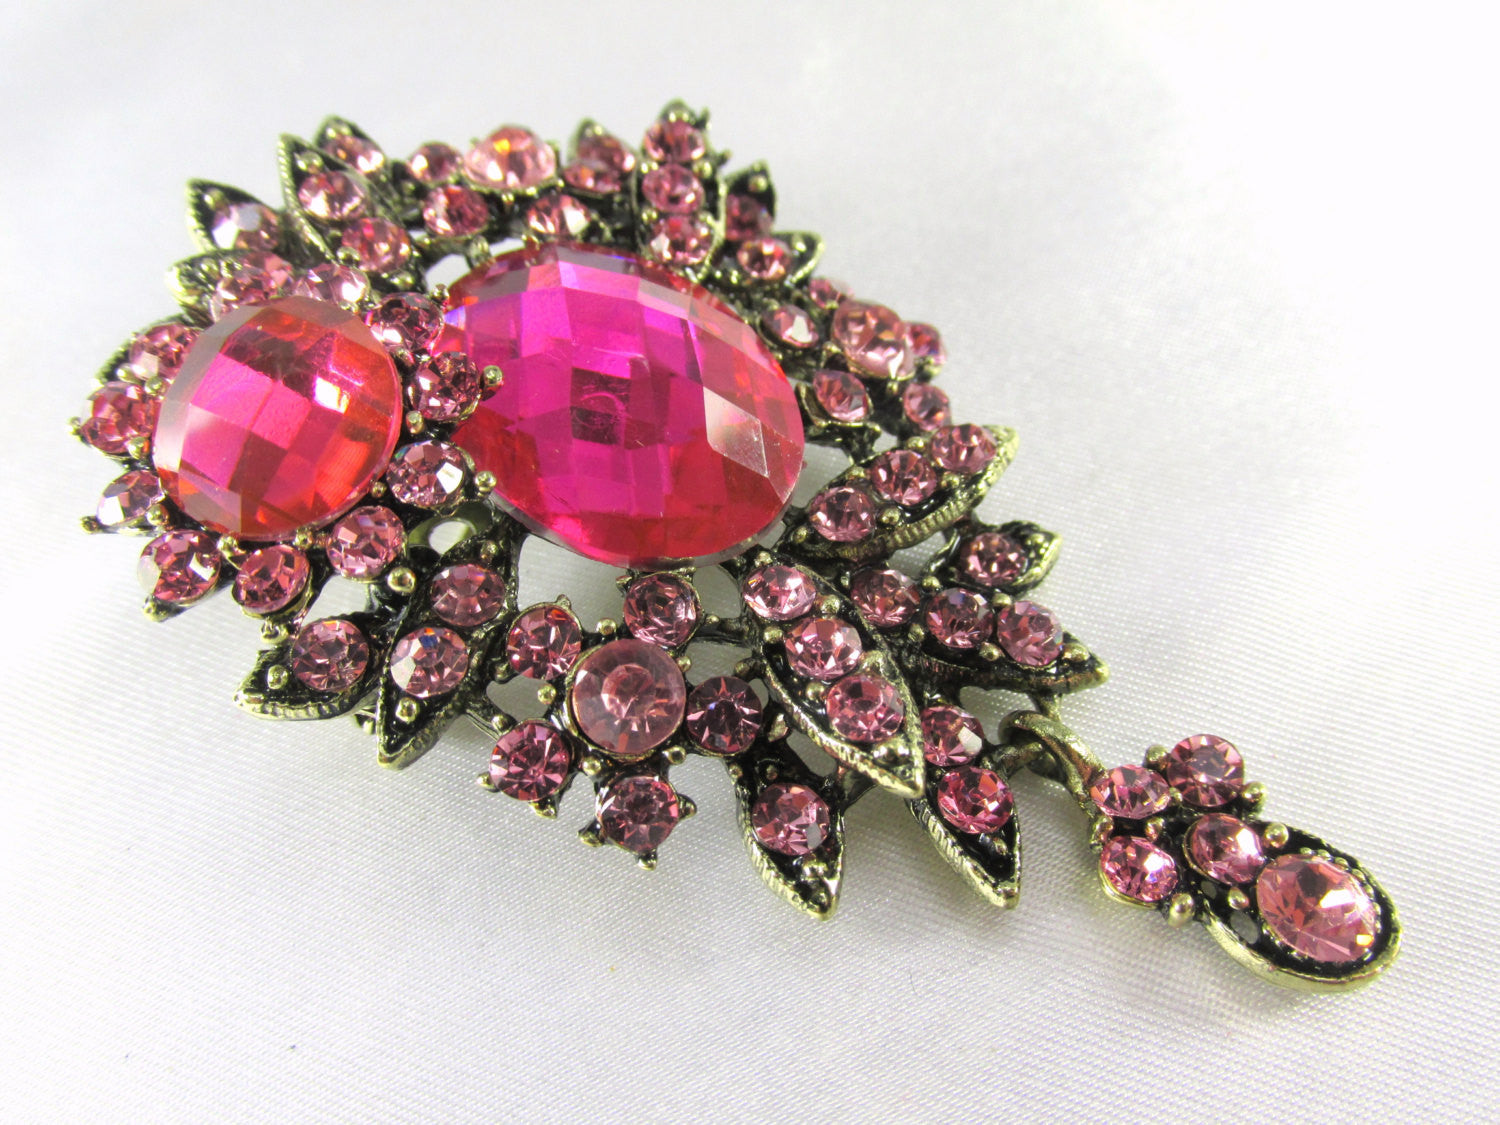 Pink Teardrop 2.75 Inch Brooch in Antique Brass - Odyssey Cache - 2